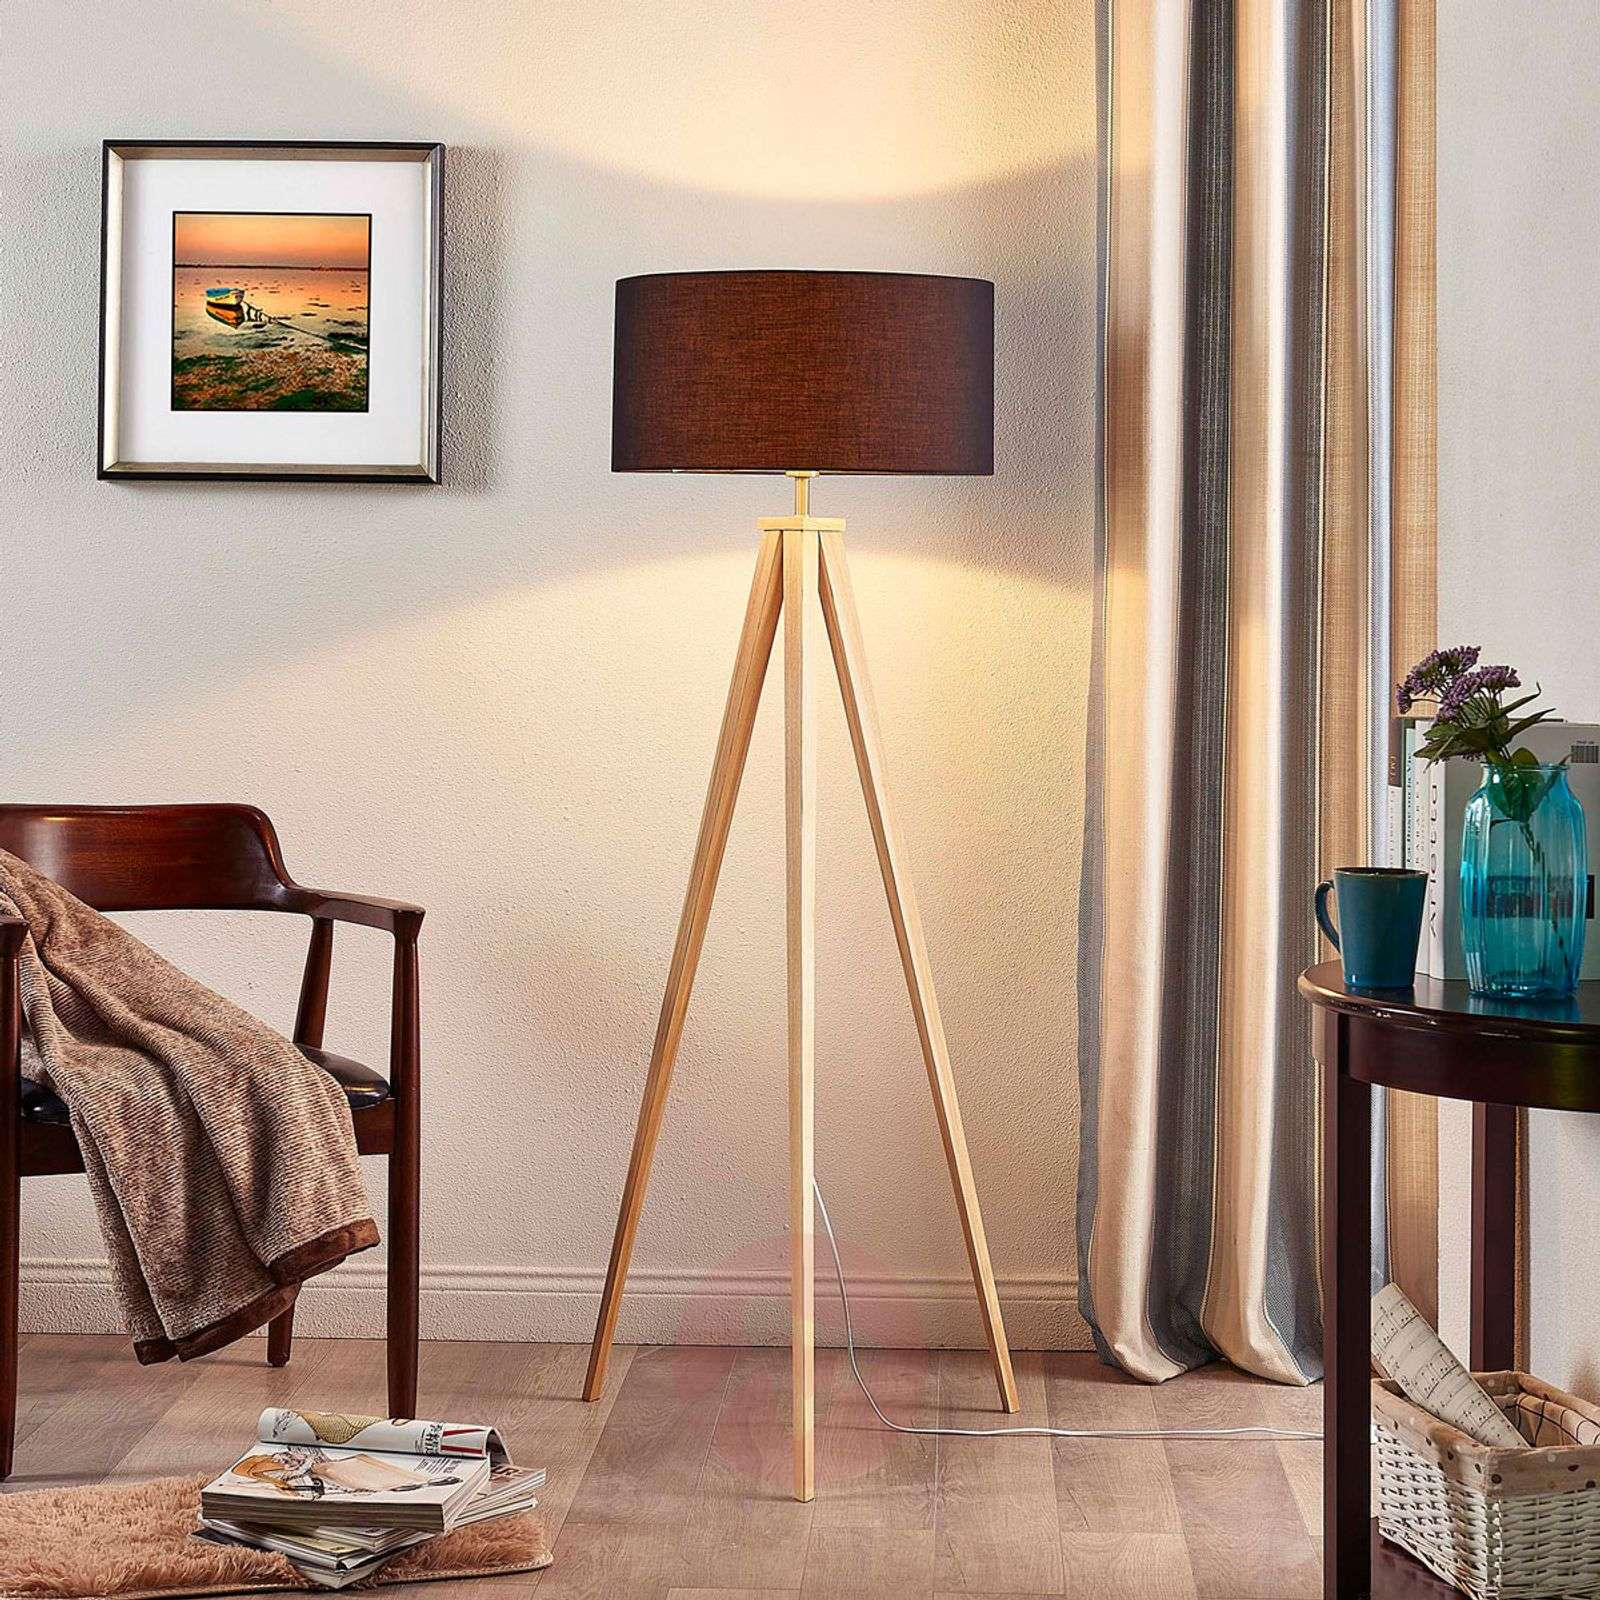 Mya wooden floor lamp with black fabric lampshade-9621330-01